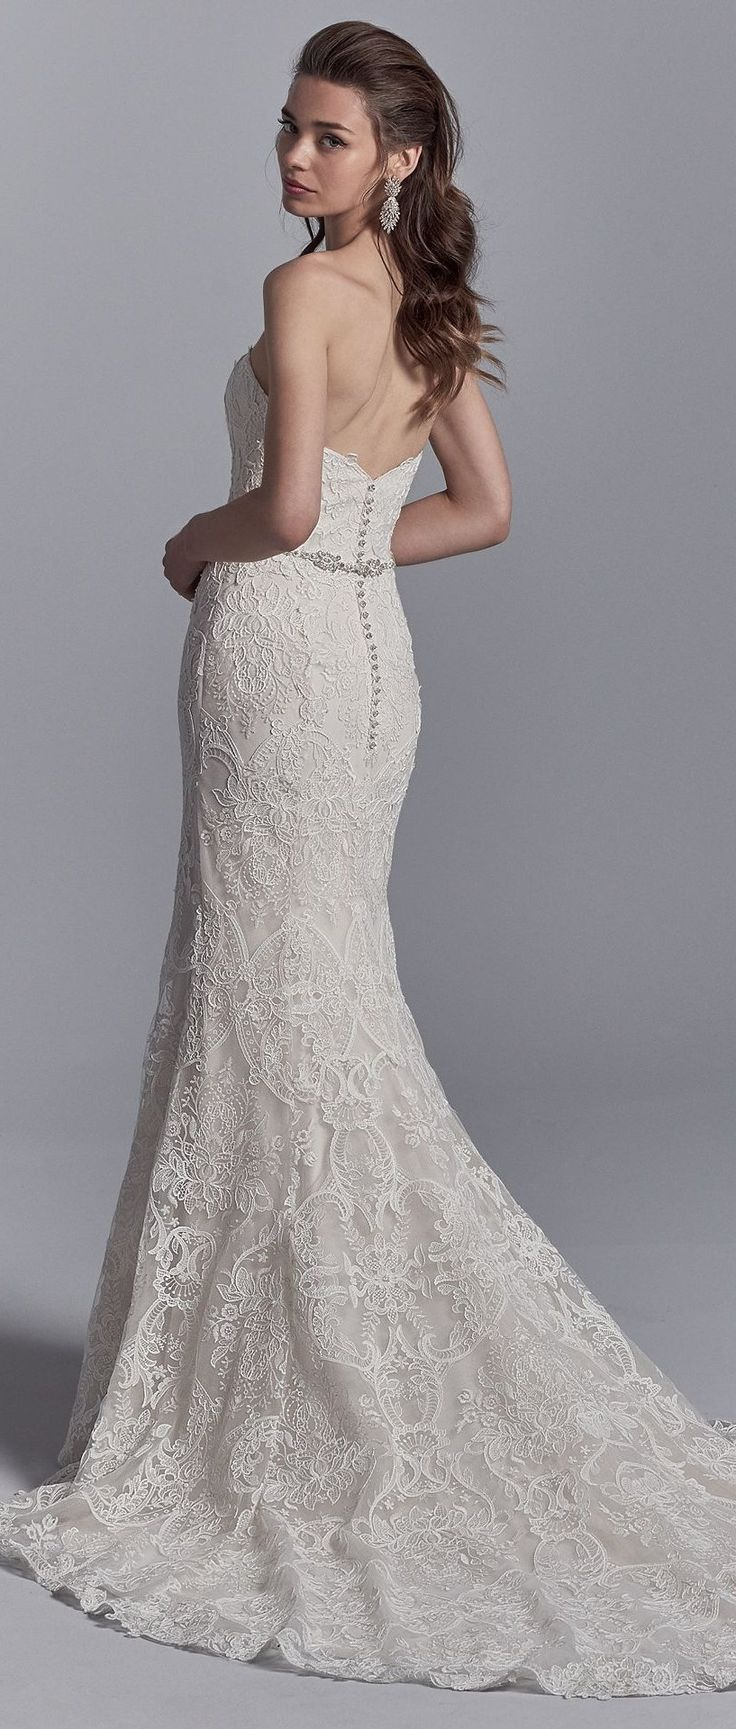 Graham by Sottero and Midgley lined with shapewear for a figure-flattering fit xoxo